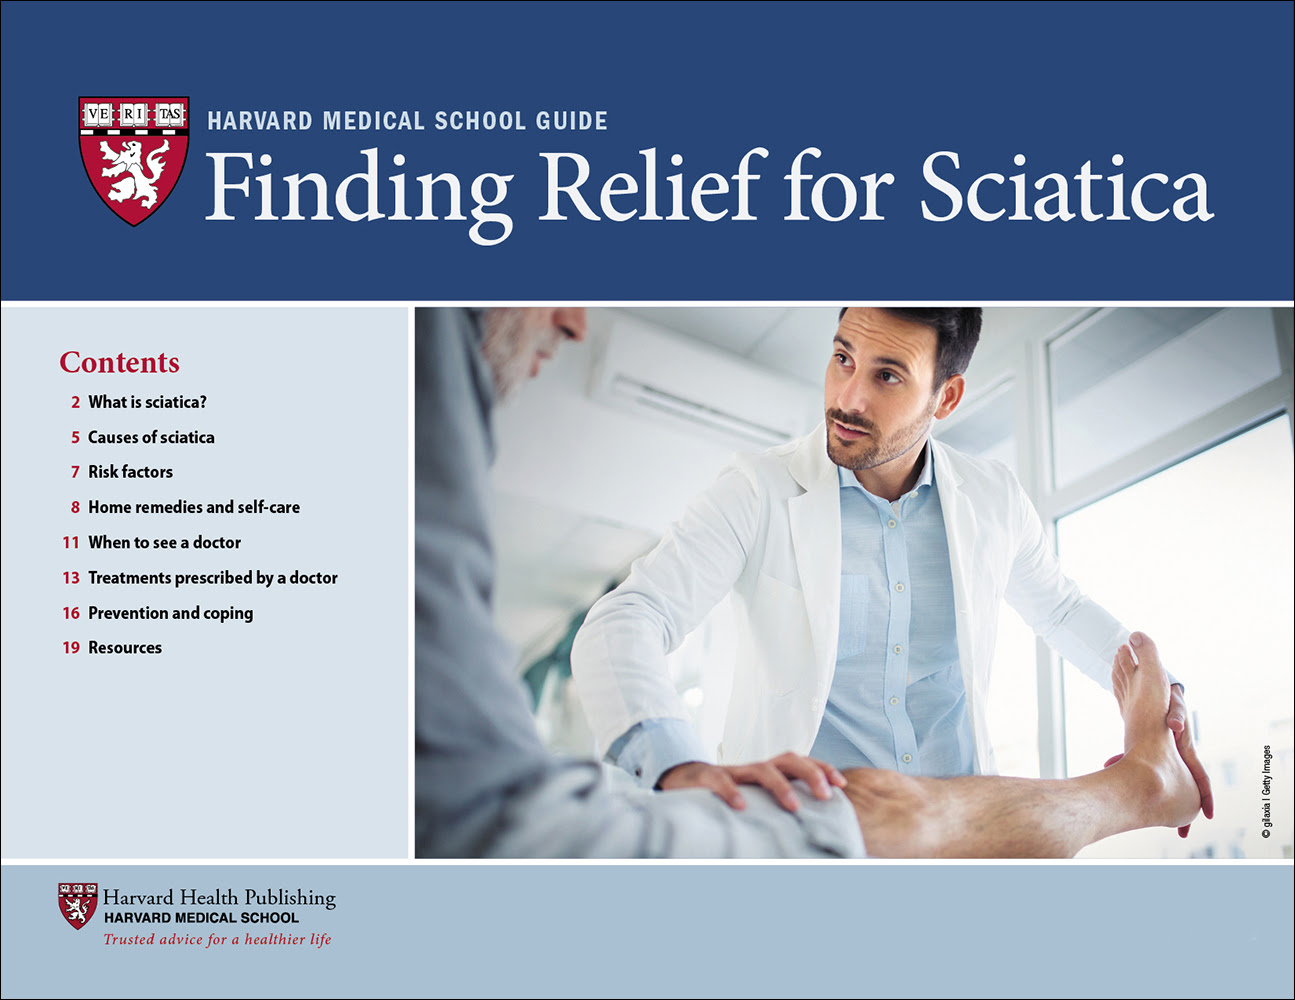 Finding Relief for Sciatica